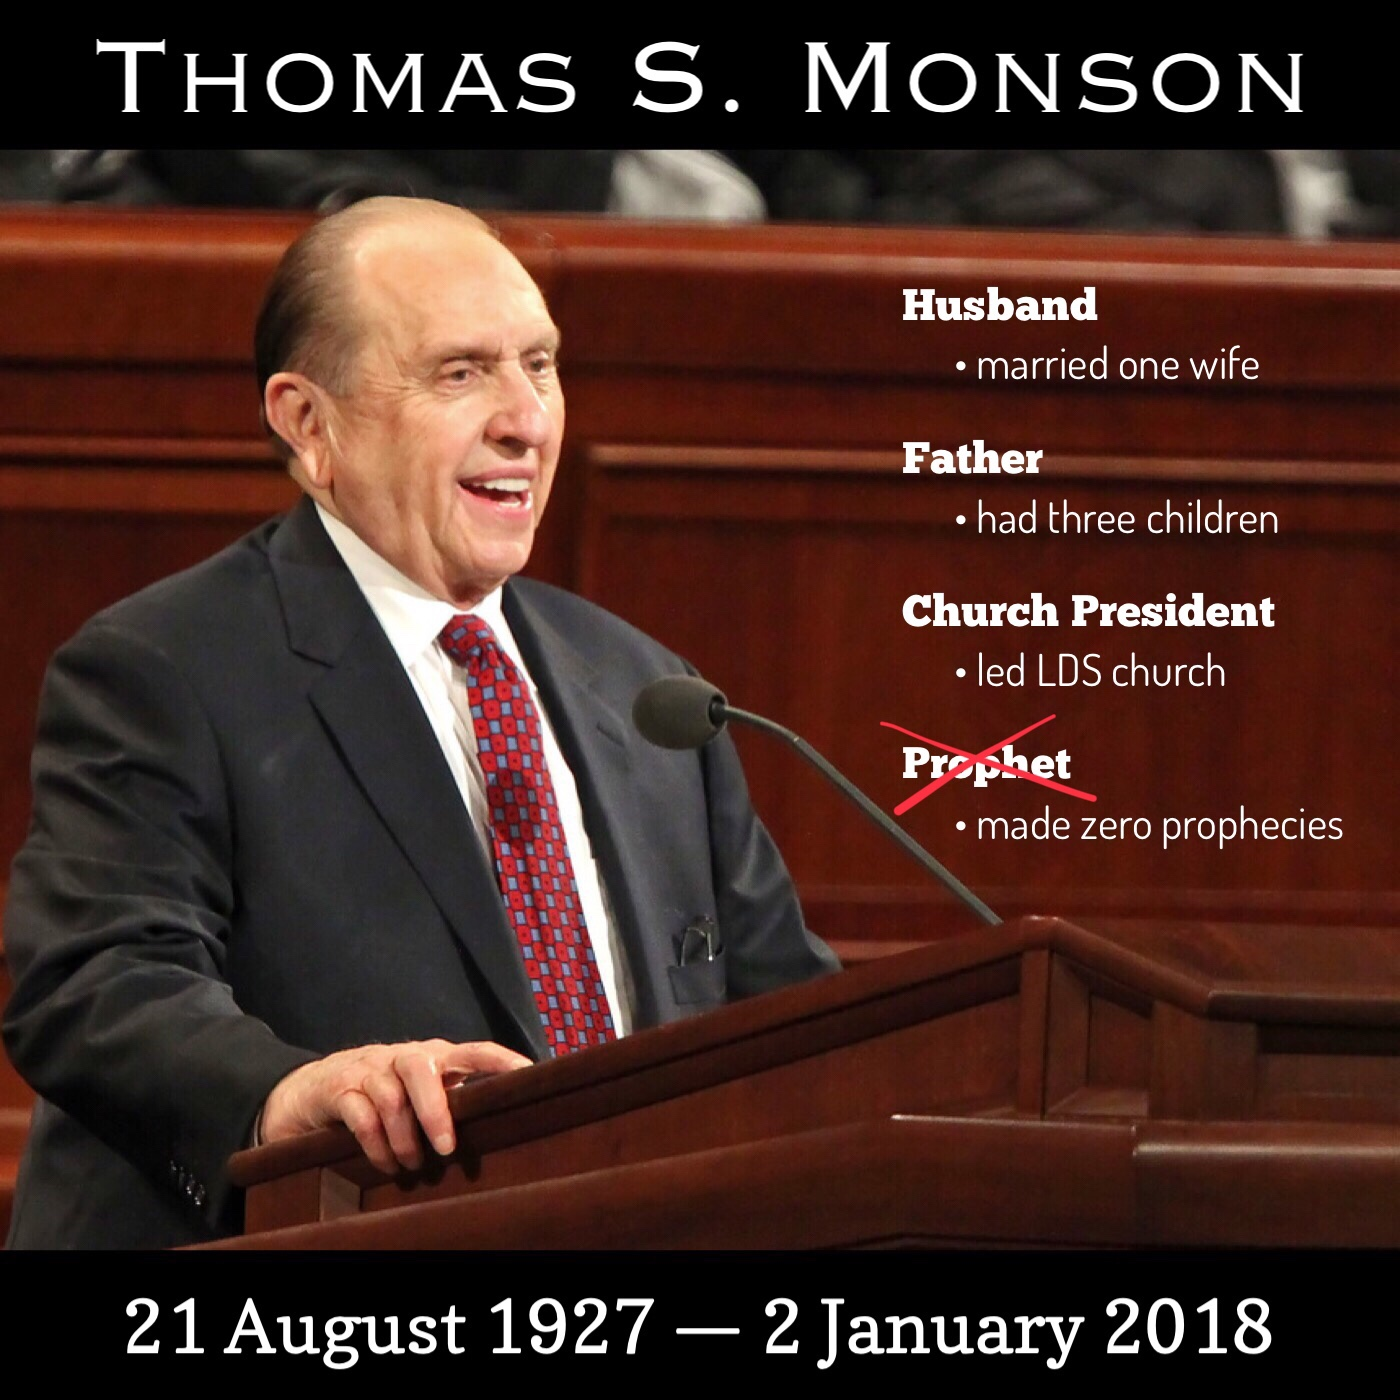 Thomas S. Monson never prophesied